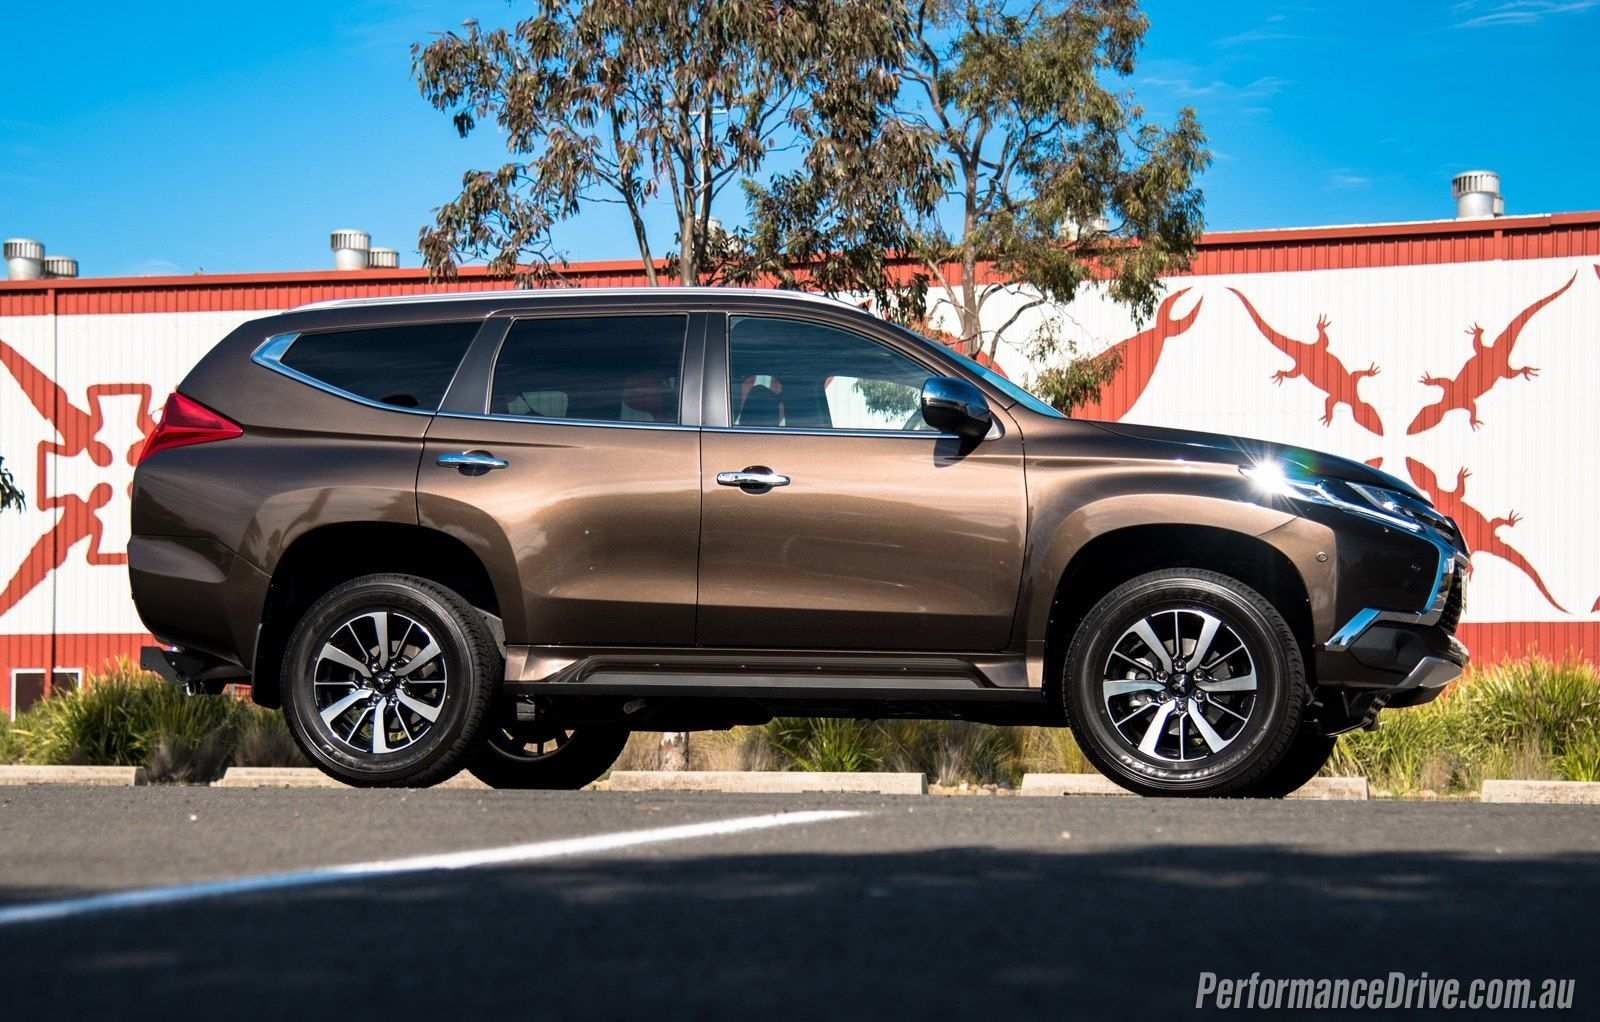 65 Best 2020 Mitsubishi Montero Review And Release Date